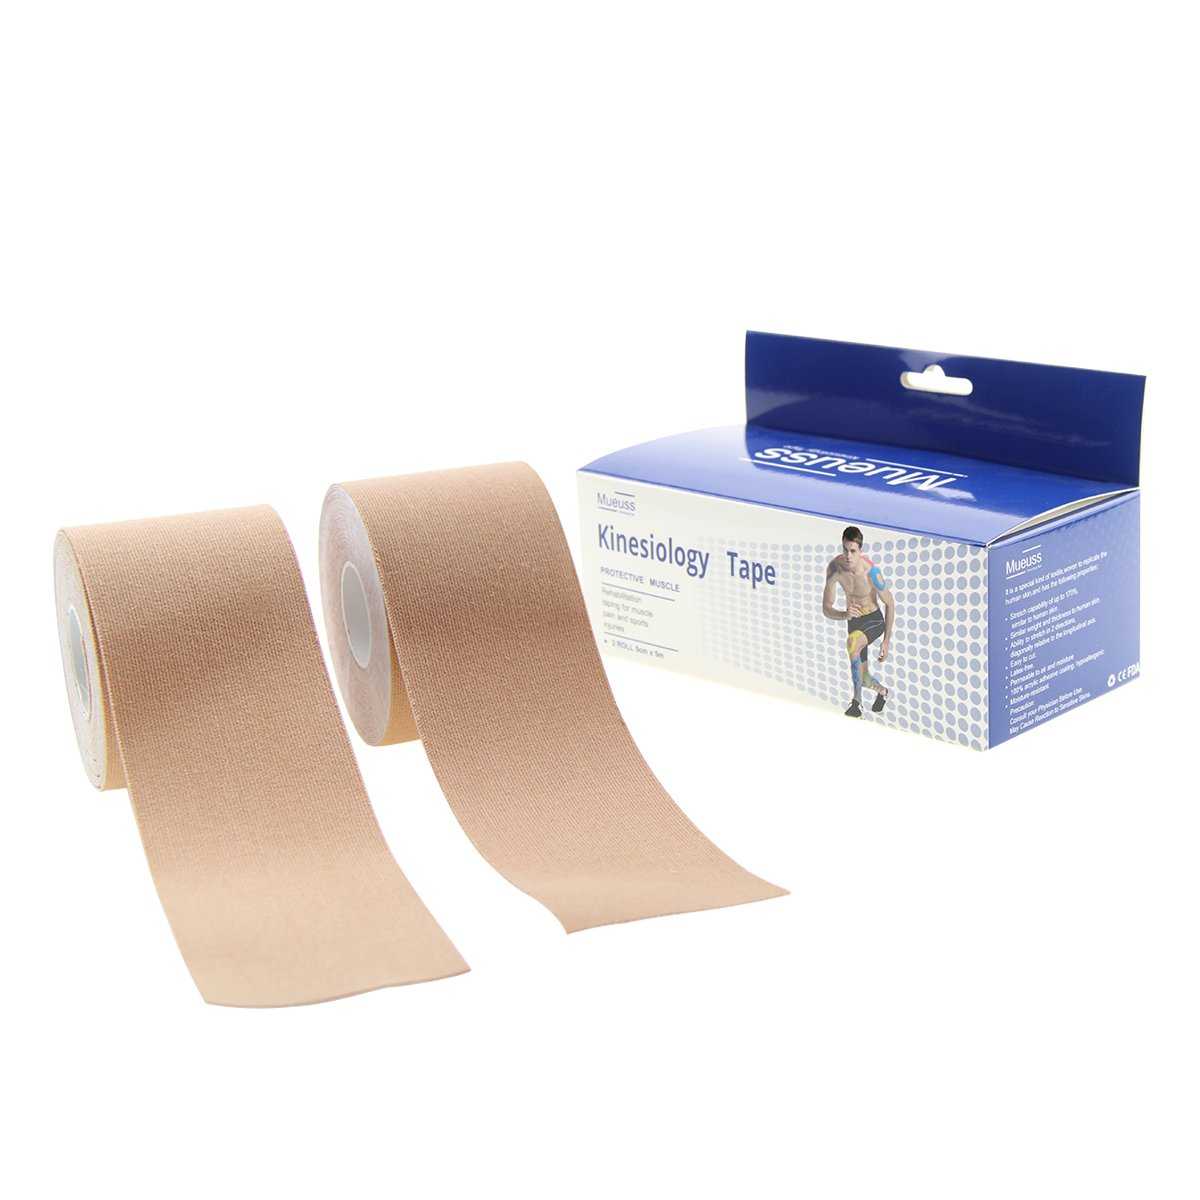 MUEUSS Kinesiology Tapes Uncut Waterproof Hypoallergenic Breathable Elastic Roll for Knee Ankle Muscles Elbow Shoulder Latex Free 16.5 ft (Beige (2 pc/Set))